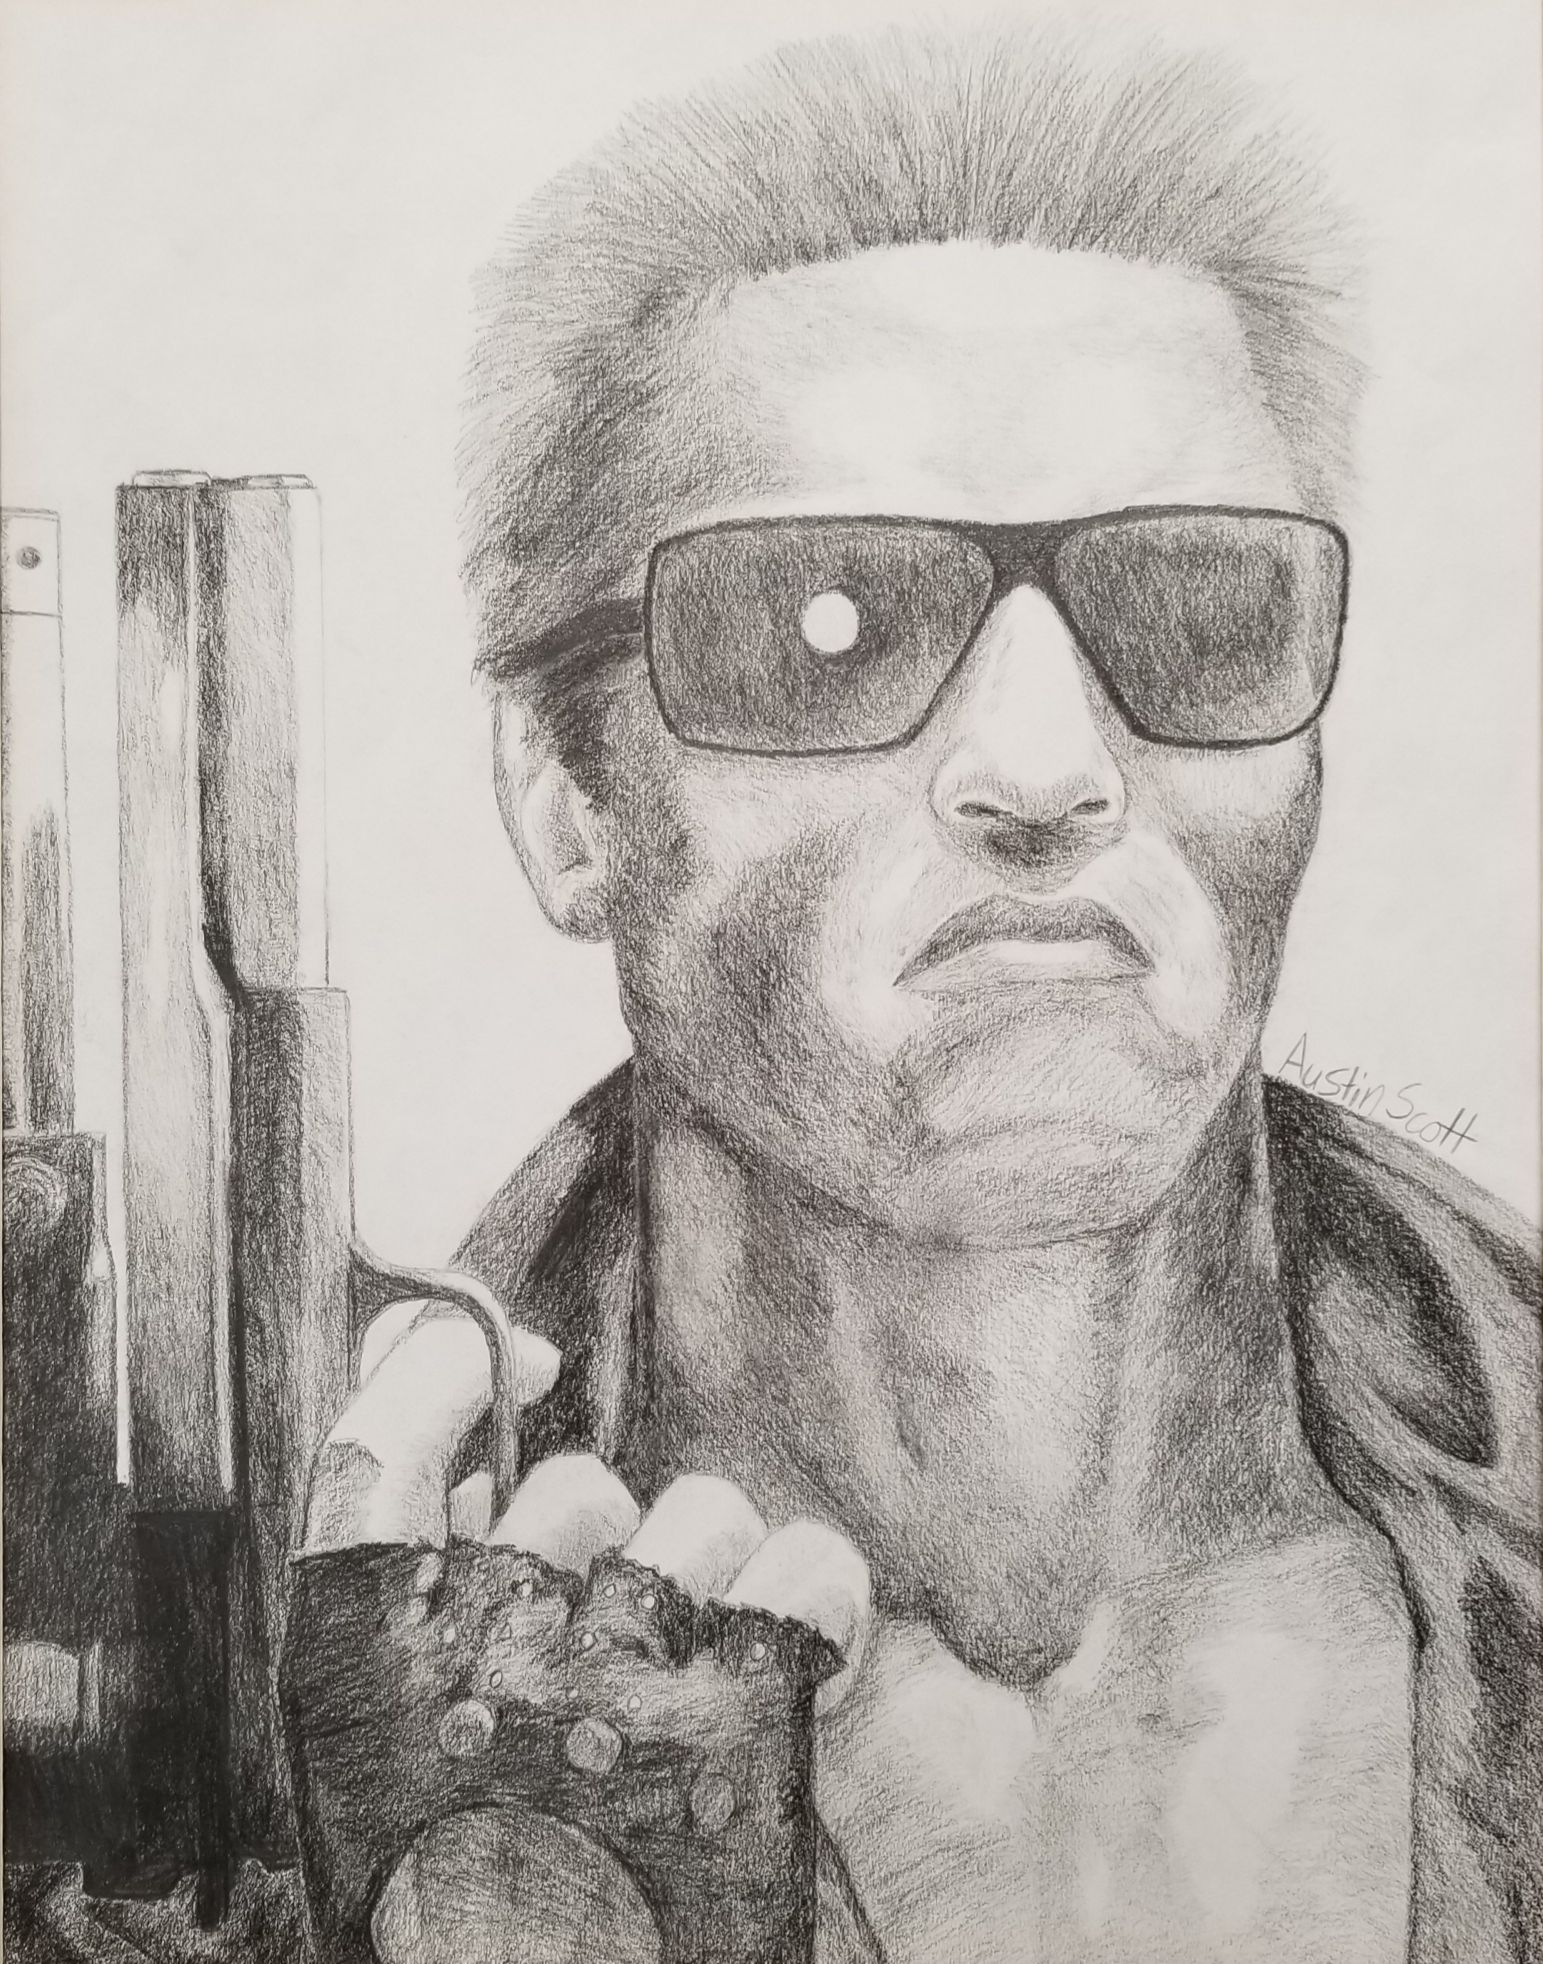 A fan of Terminator films, Austin truly captured the intensity of a photo with great accuracy and style, stroke by stroke in graphite. His attention to every little detail makes this such a success. Austin takes private lessons and looks forward to writing and illustrating his stories.